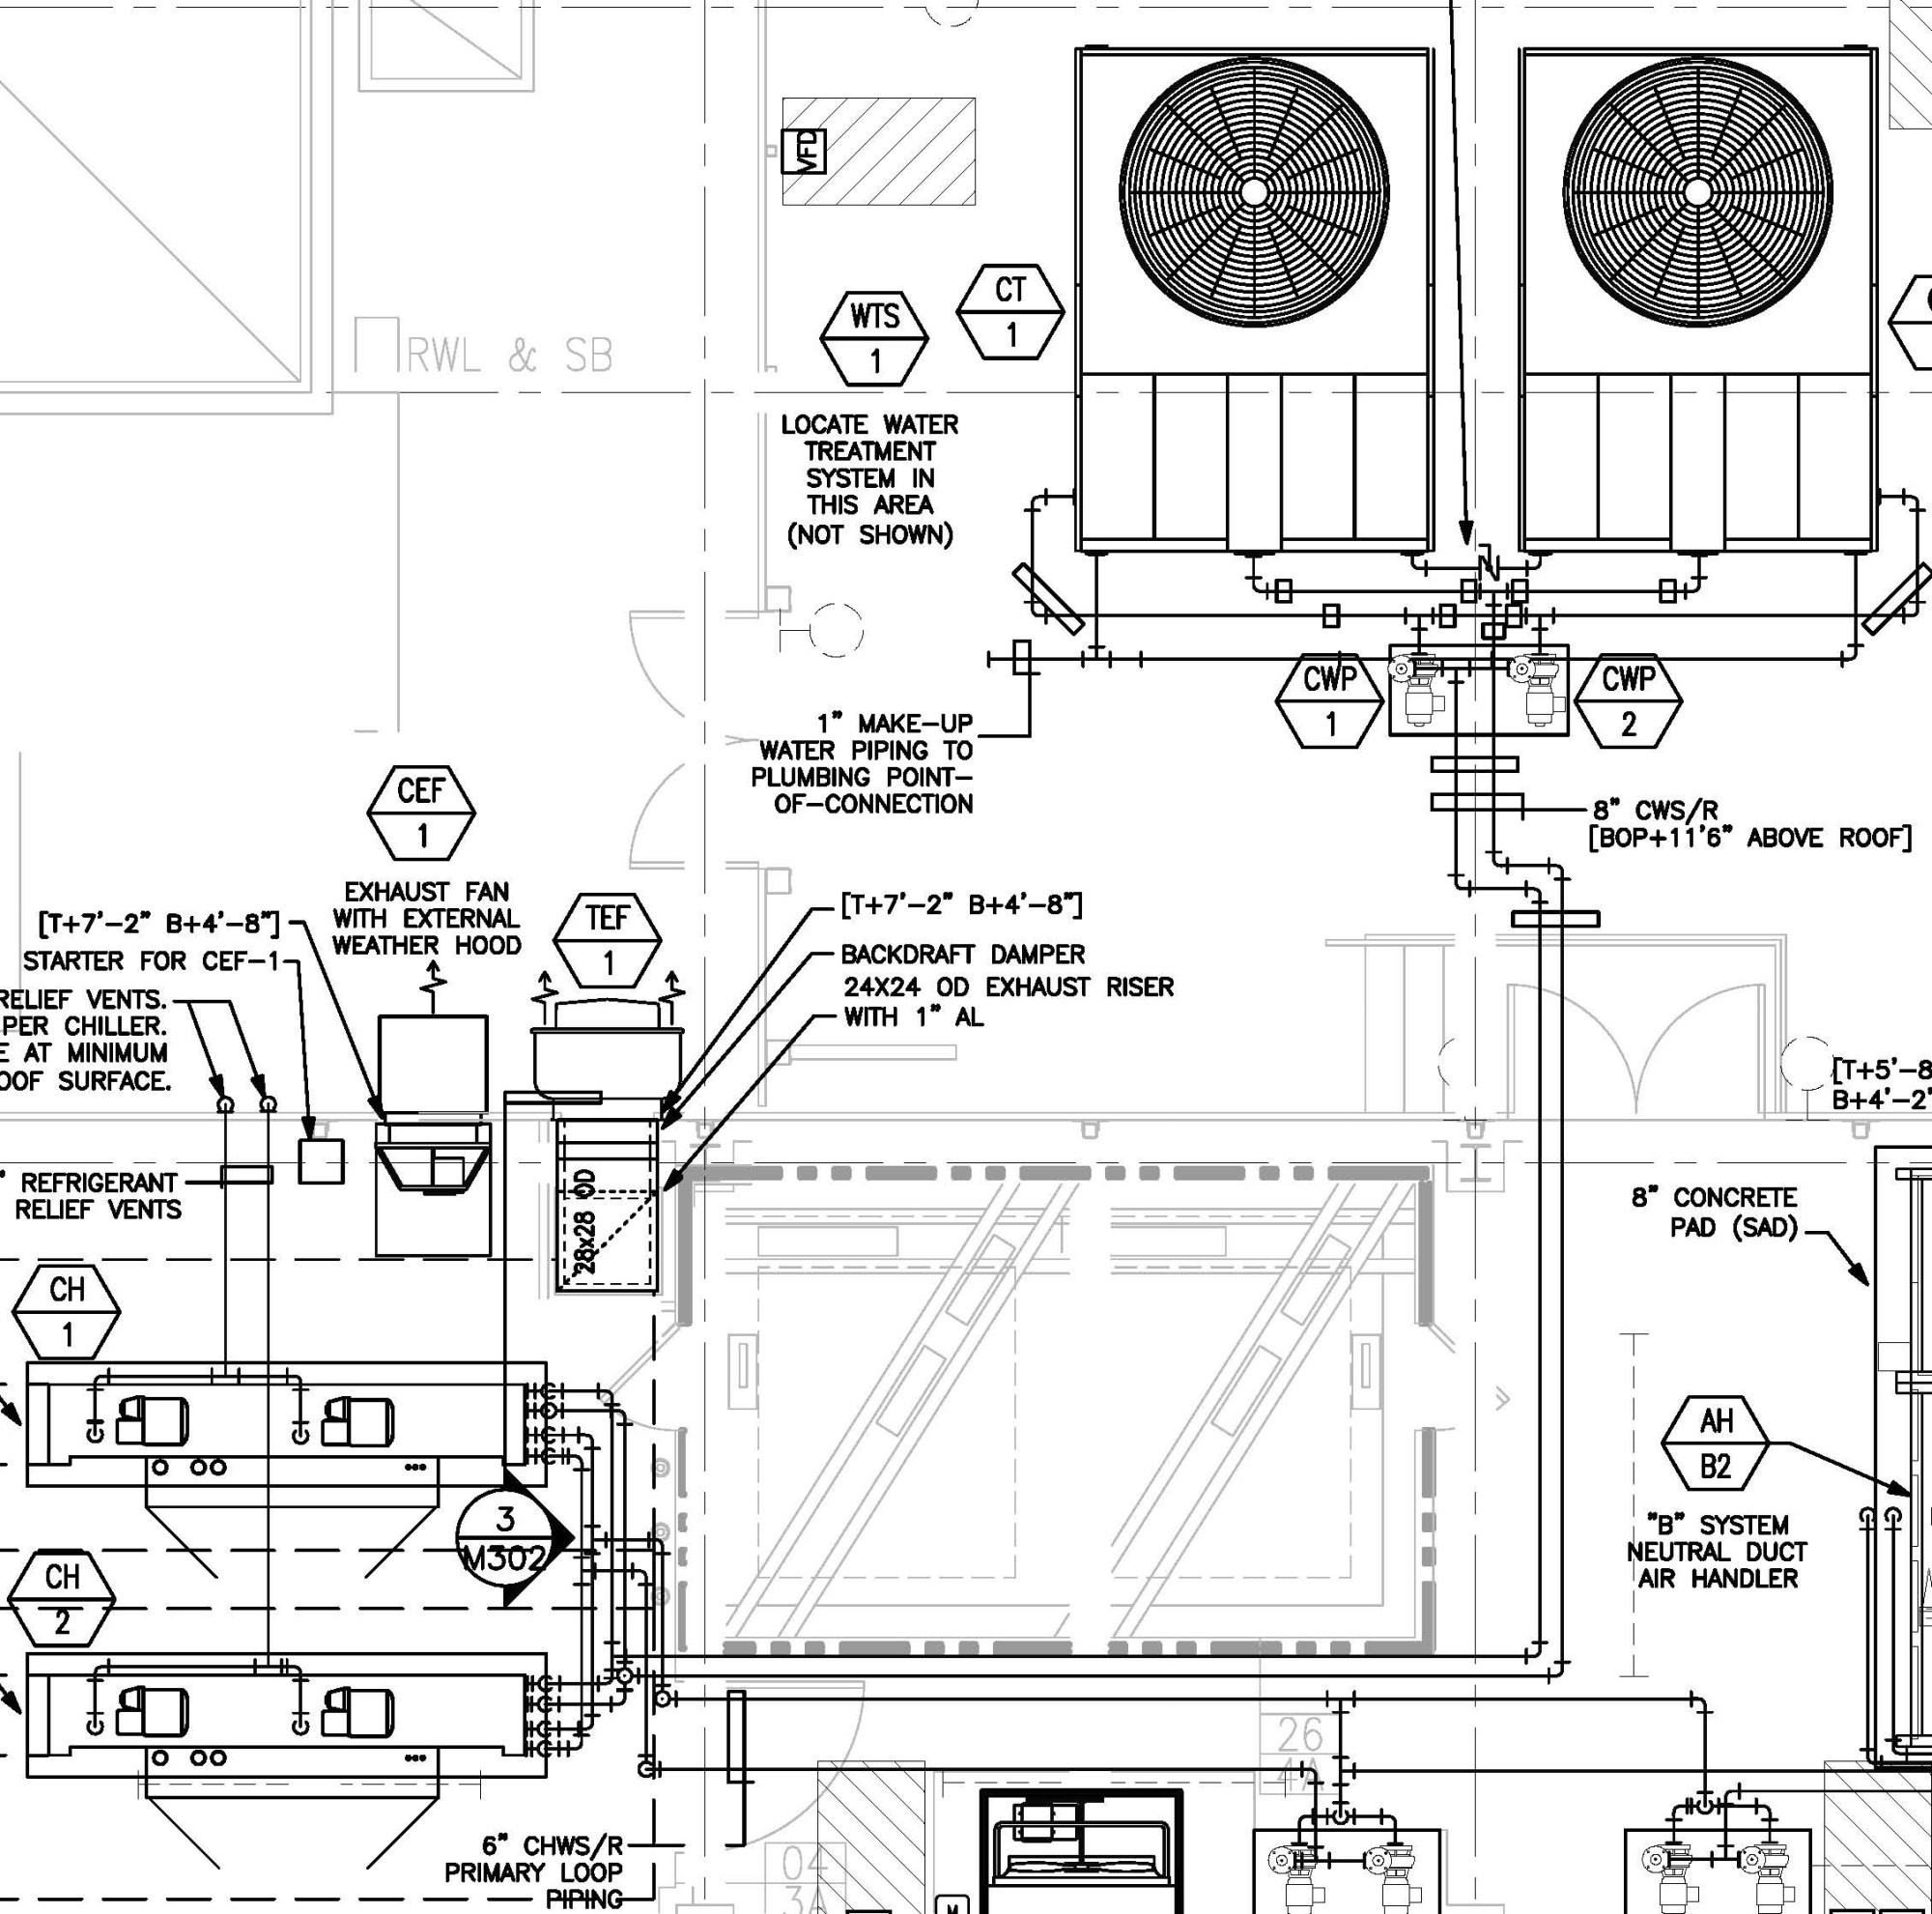 hight resolution of walk in cooler wiring diagram free download wiring diagram technic nor lake wiring diagram wiring diagram